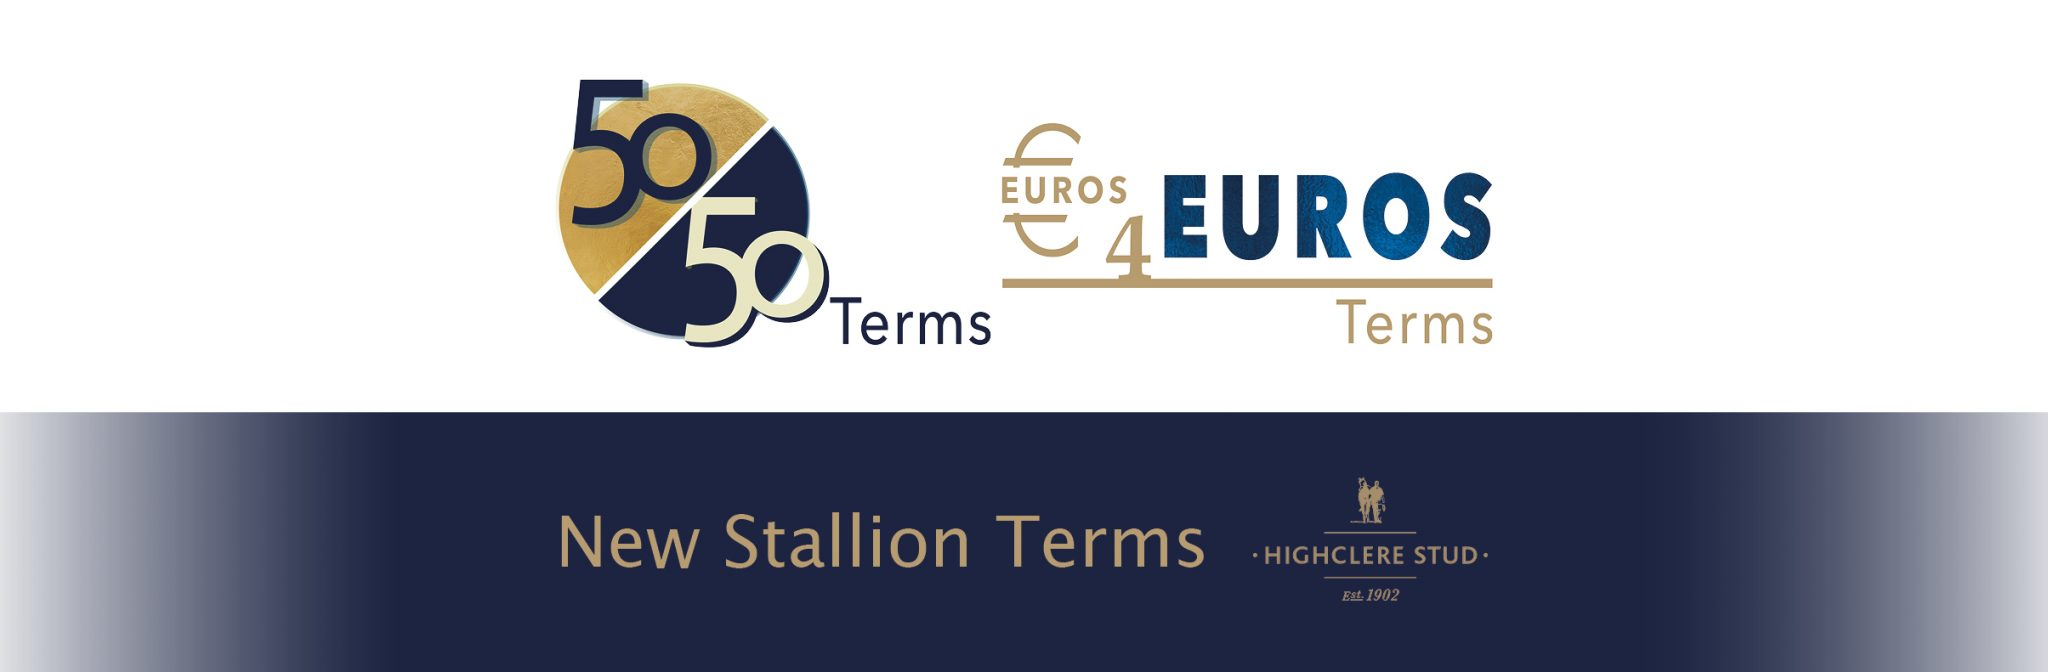 Highclere Stud Launch 50/50 and Euros4Euros Nomination Terms